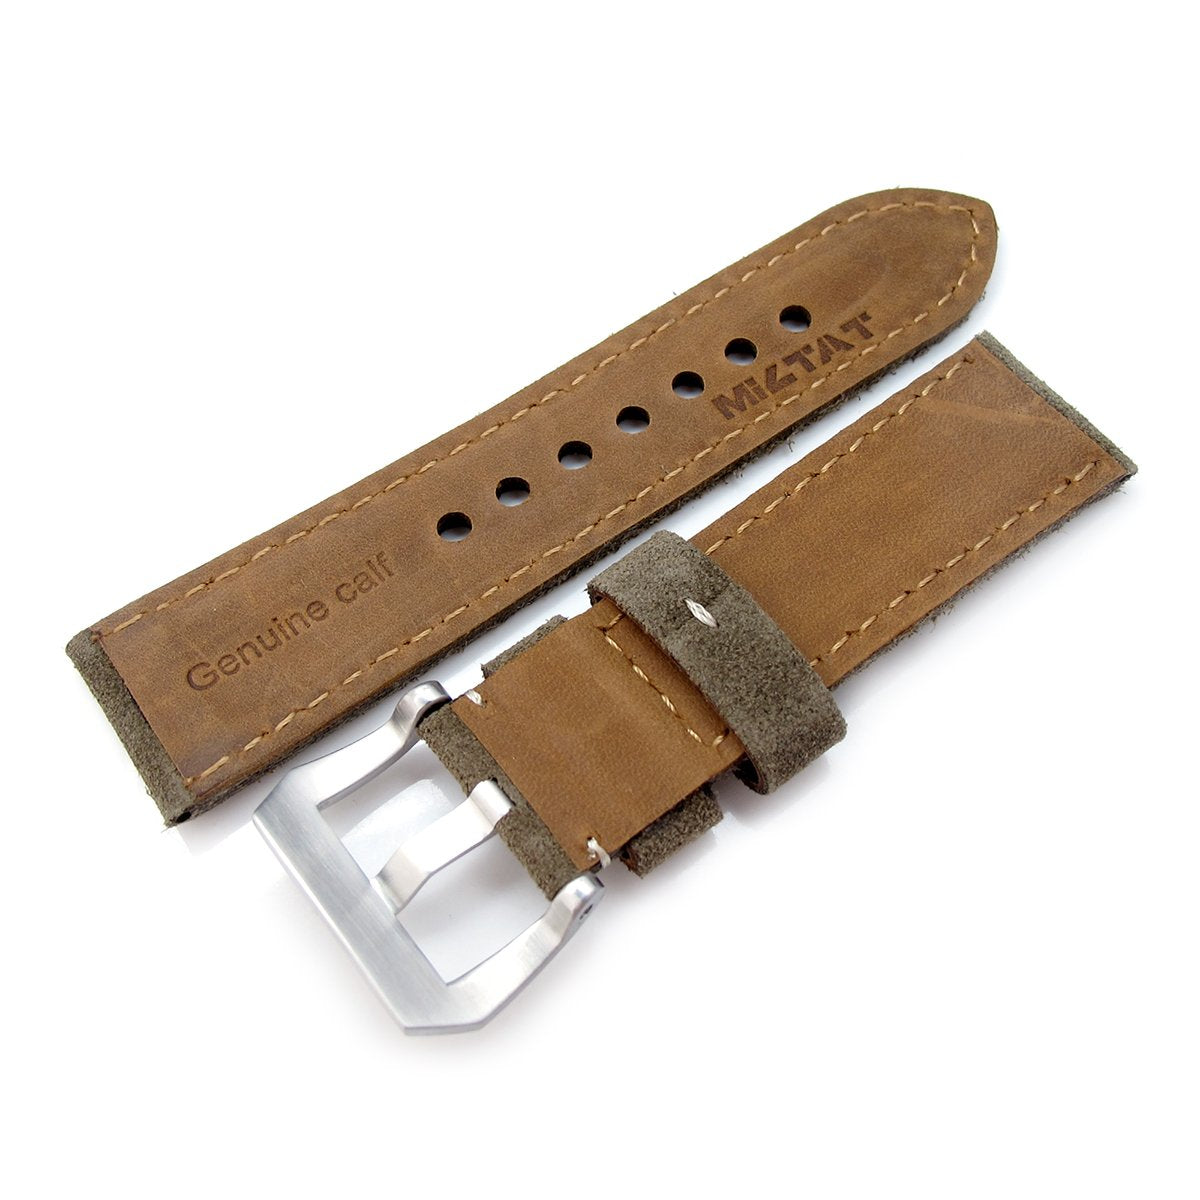 24mm MiLTAT Military Green Nubuck Leather Watch Band Beige Stitching Strapcode Watch Bands